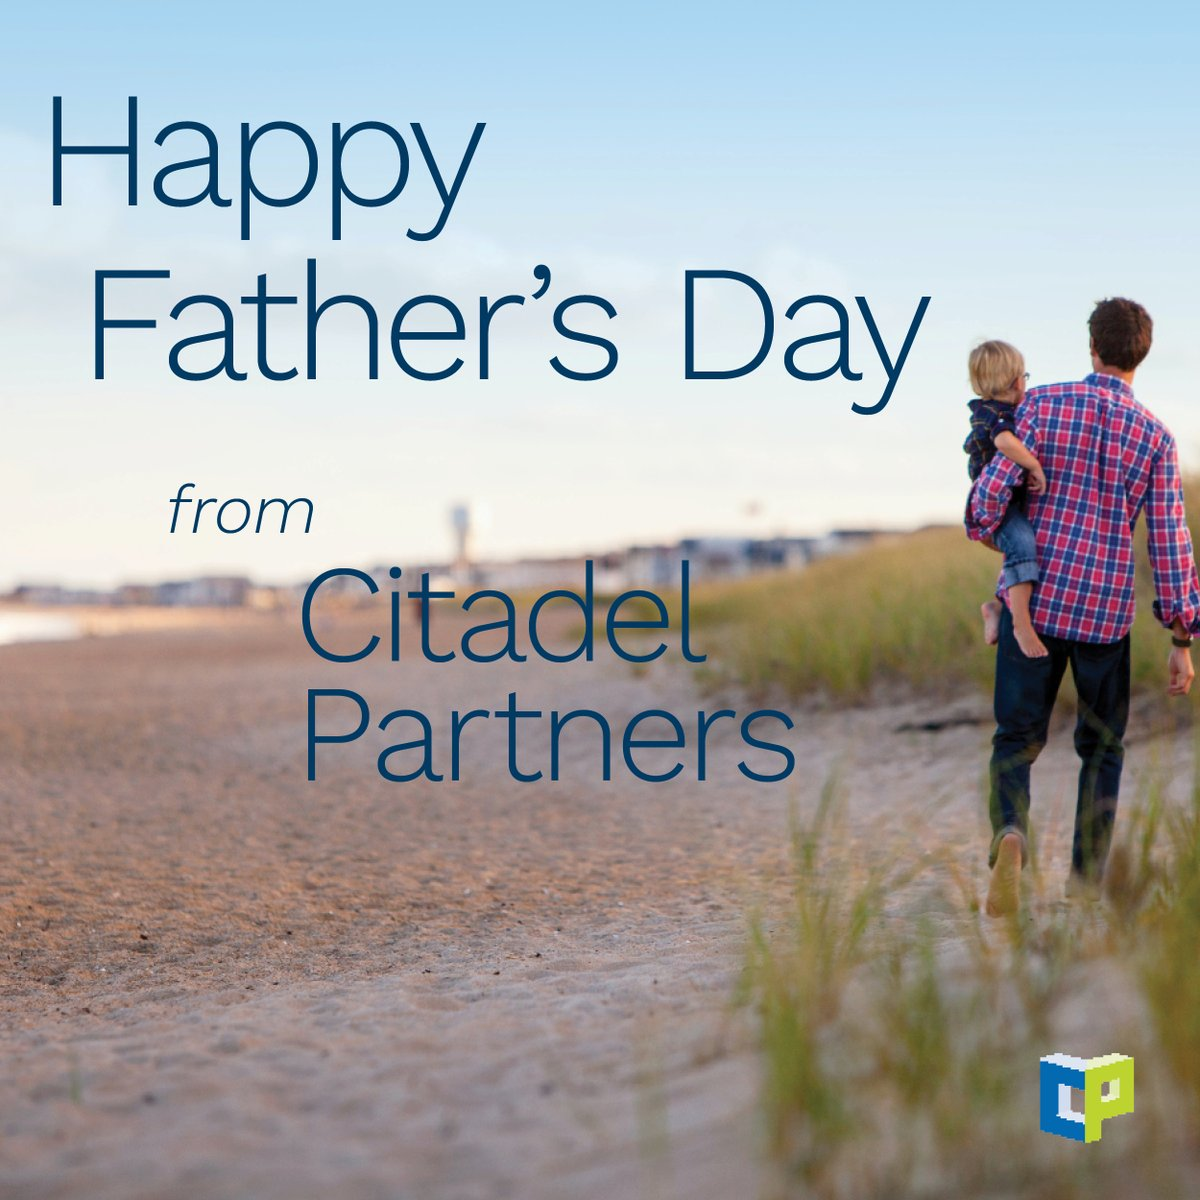 test Twitter Media - Happy Father's Day Weekend!  #CitadelPartners #DallasCommericalRealEstate #fathersday2021 #summer2021 #thankyou https://t.co/730iTLSzVe